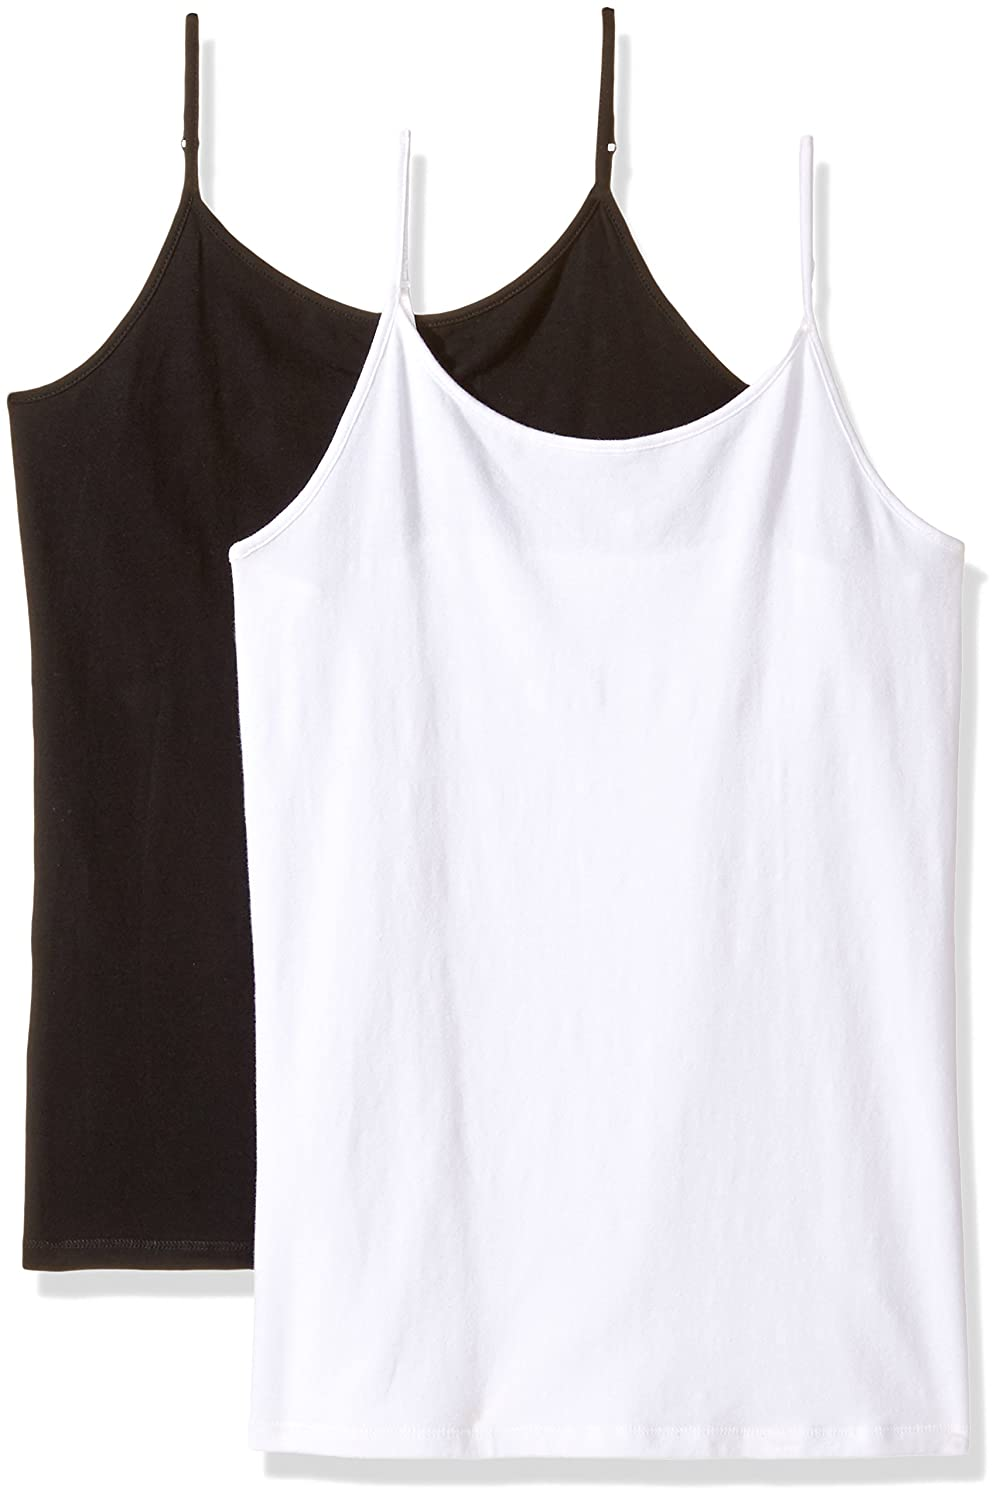 ceeb892f0d4bdf Amazon.com  The Children s Place Girls  Cami (Pack of 2)  Clothing